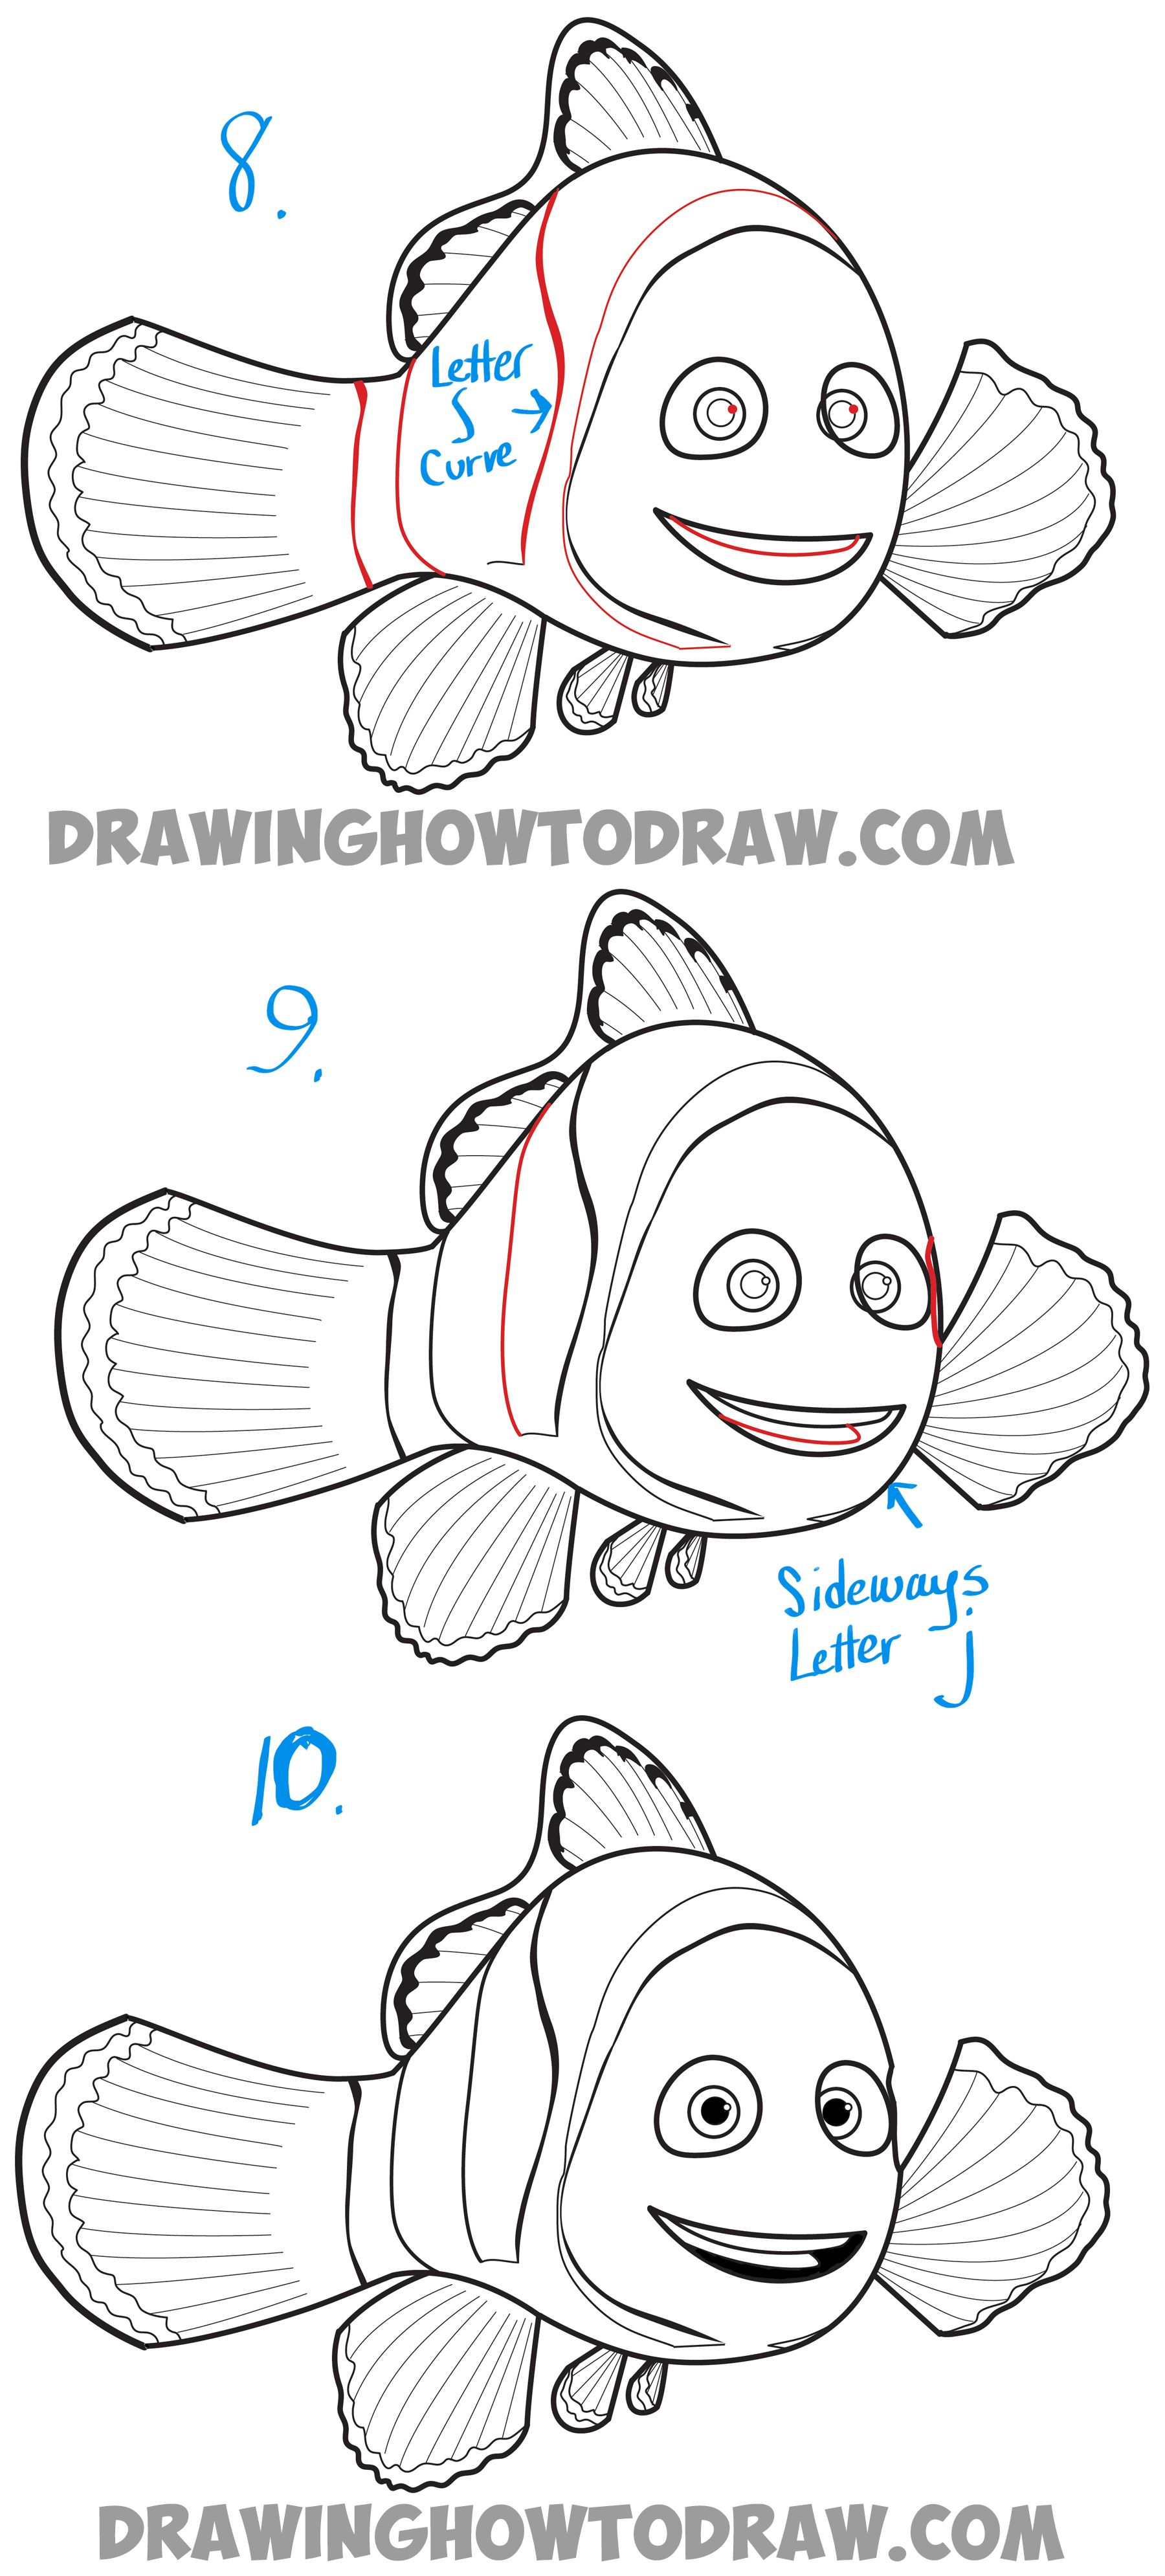 How To Draw Marlin From Finding Dory And Finding Nemo Easy